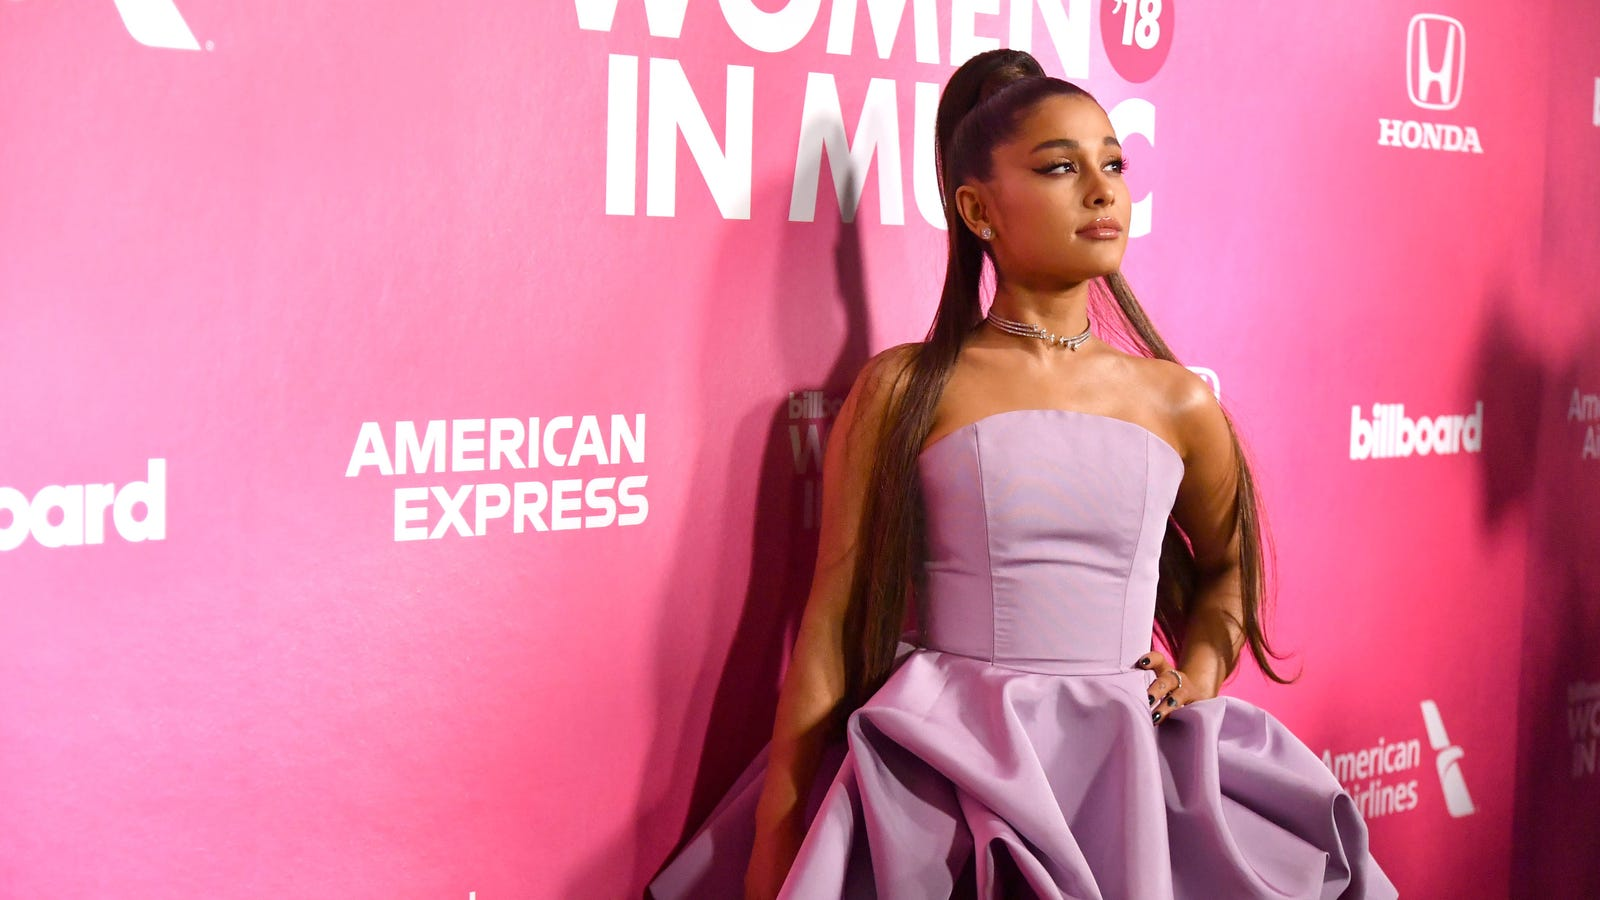 Ariana Grande's new album will be available next month